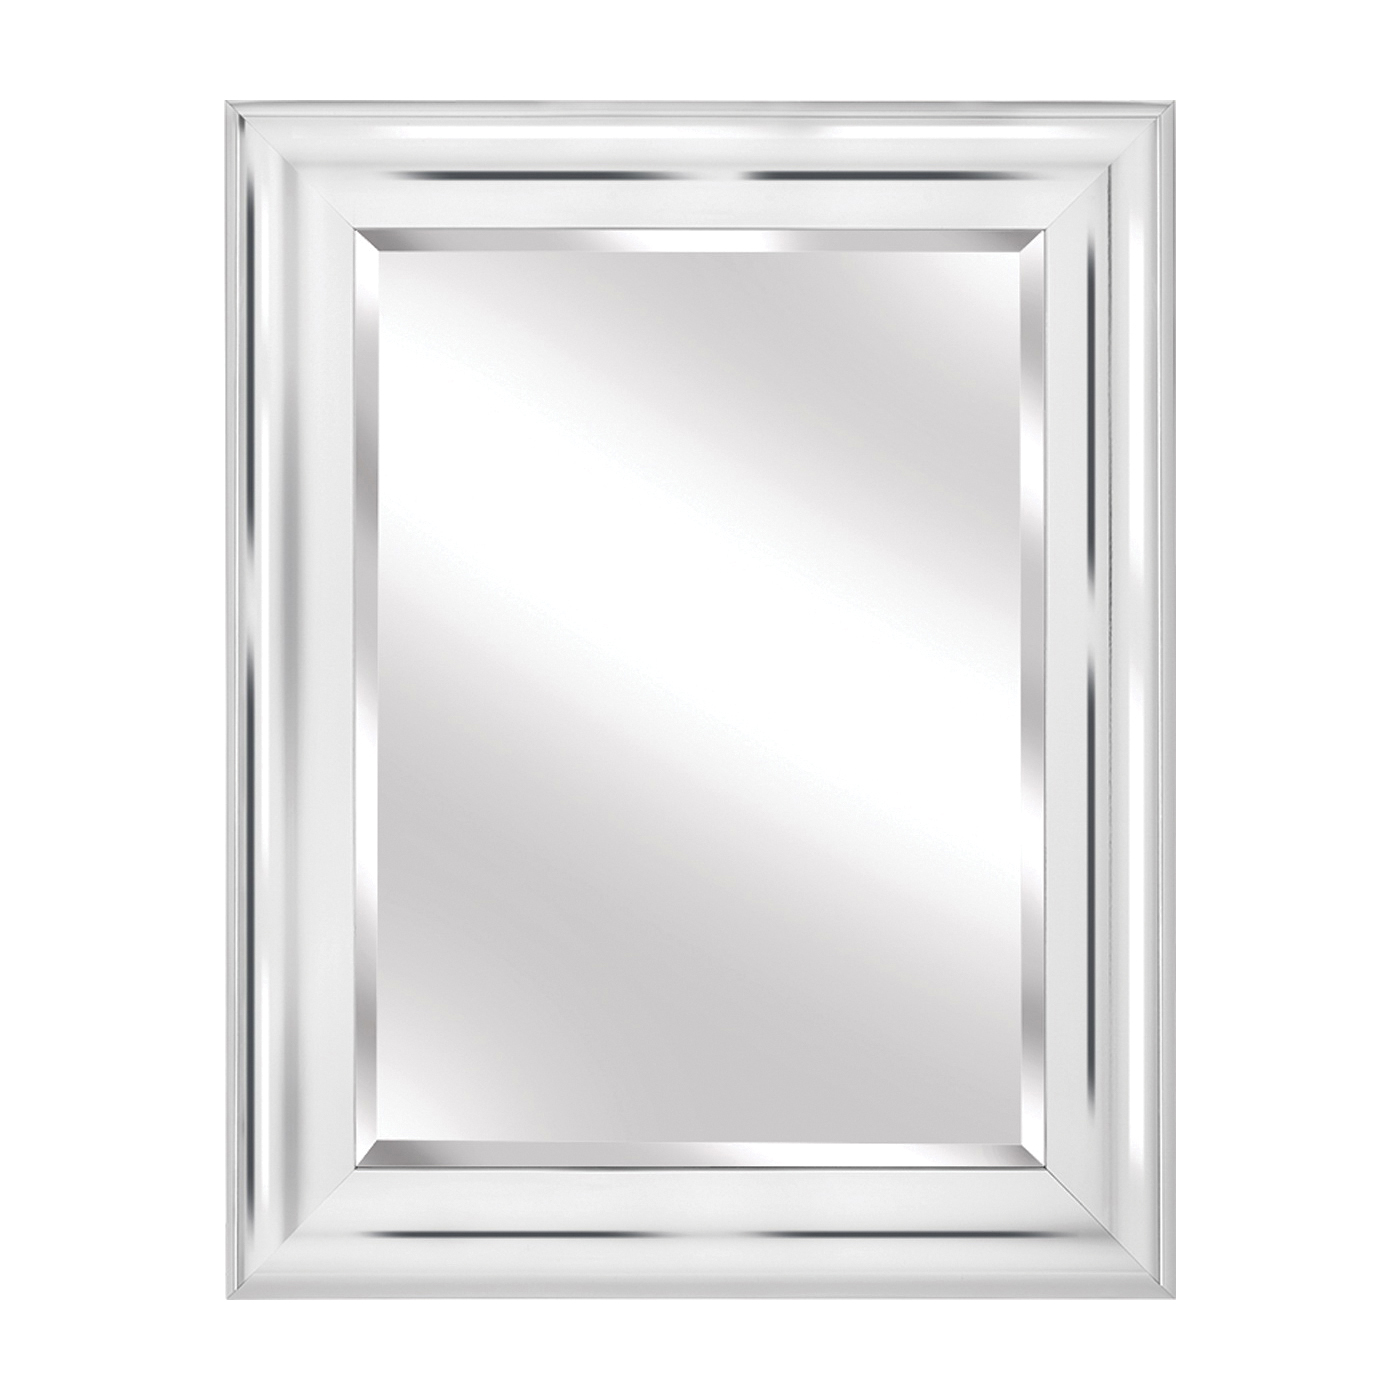 Picture of RENIN 200101 Simple Framed Mirror, 33-1/2 in W, 27-1/2 in H, Rectangular